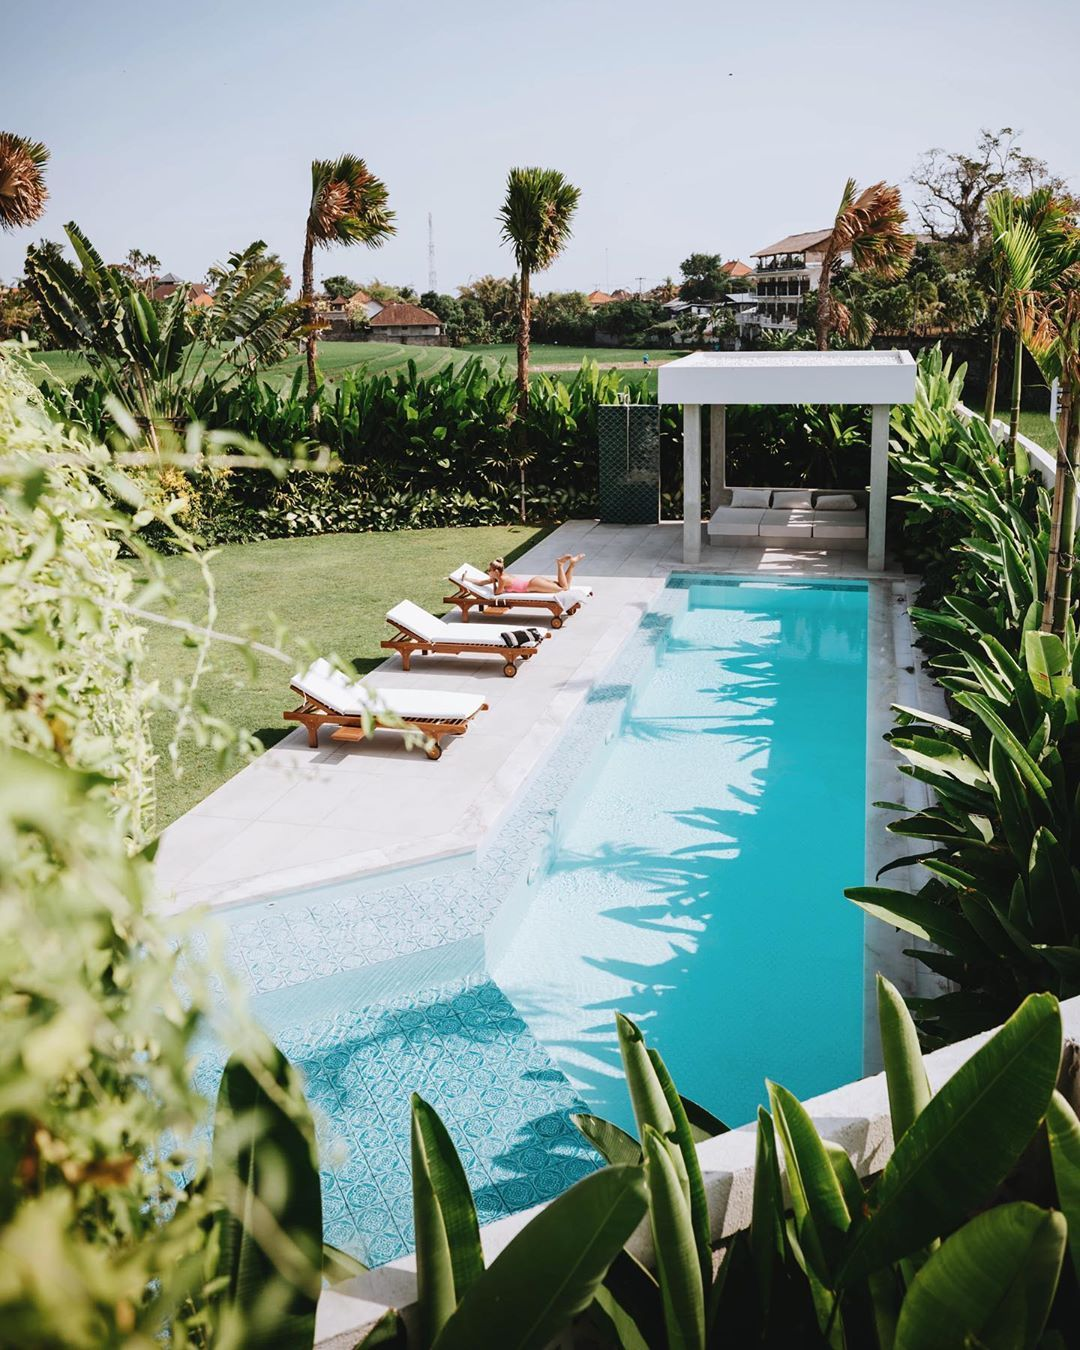 Home Sweet Home Ahhh Can Finally Share With You Guys Our Home We Have Been Busy Creating This Past Year W Bali House Budget Home Decorating Architecture